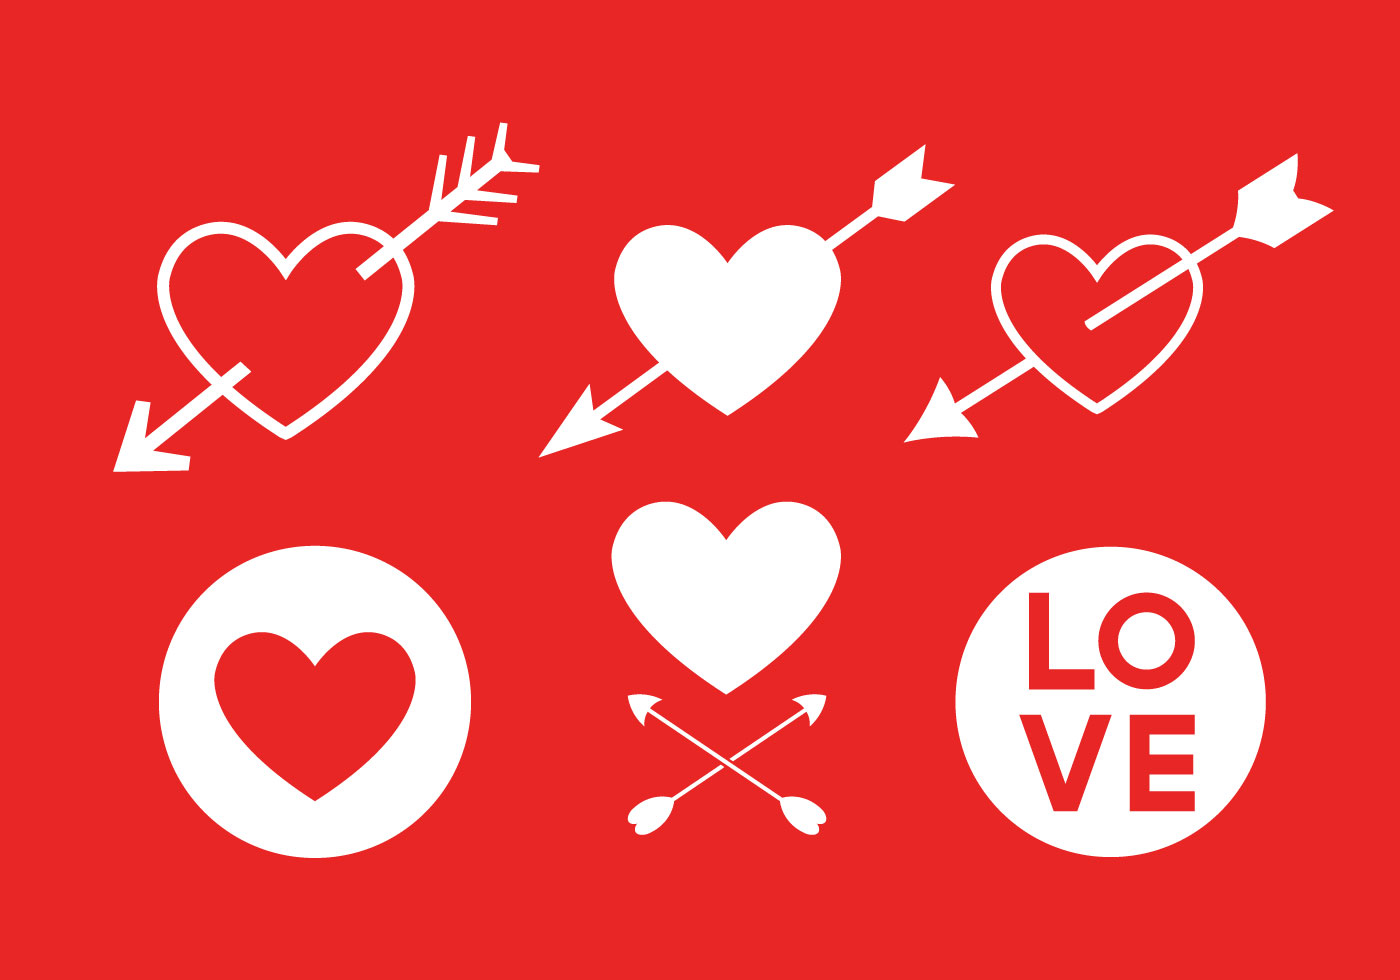 Love Vector Icons Download Free Vector Art Stock